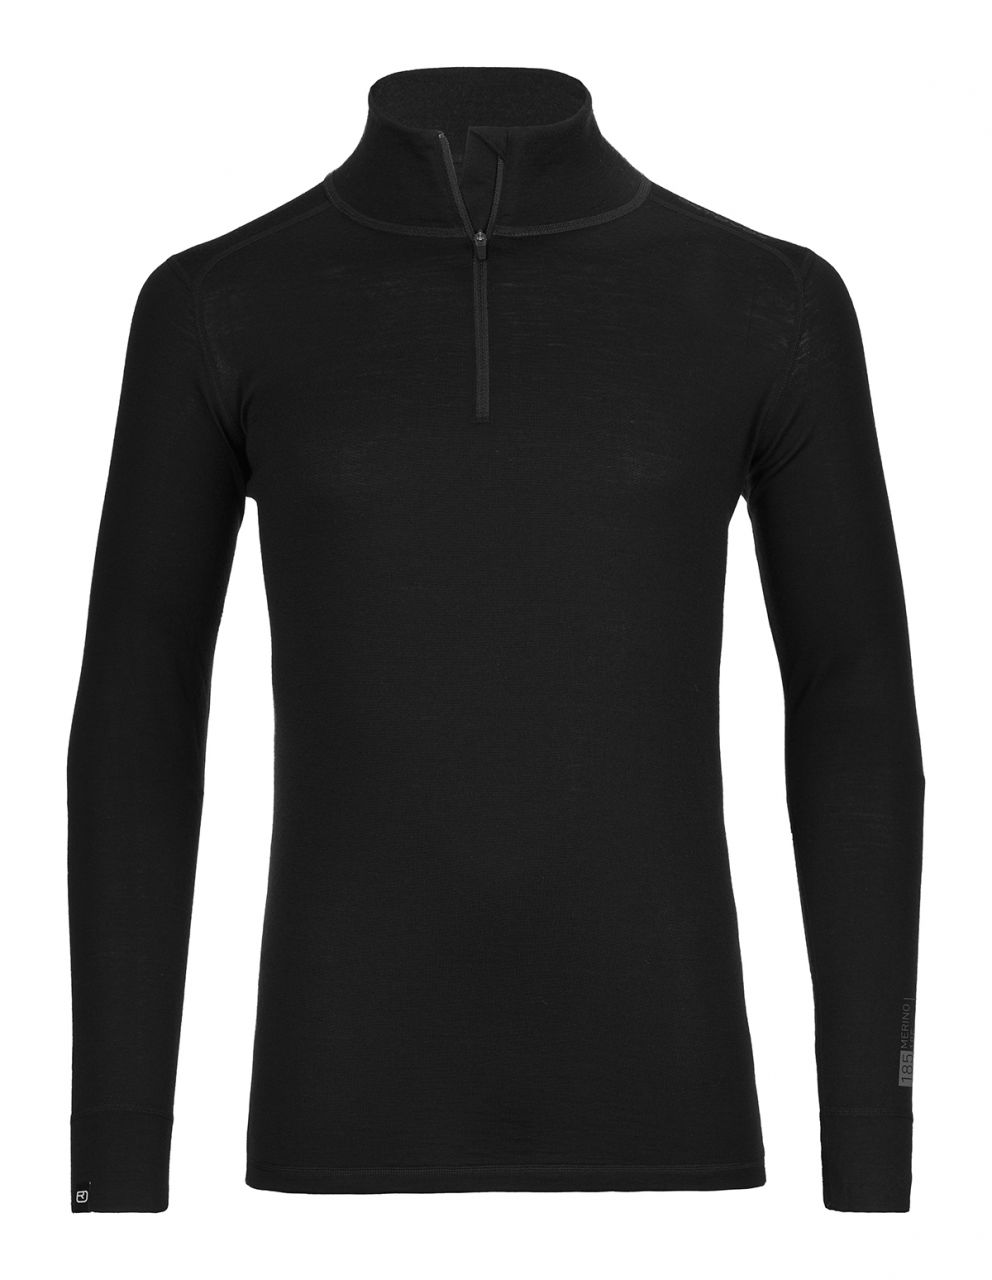 Ortovox Merino 185 Pure Long Sleeve Zipper black raven M